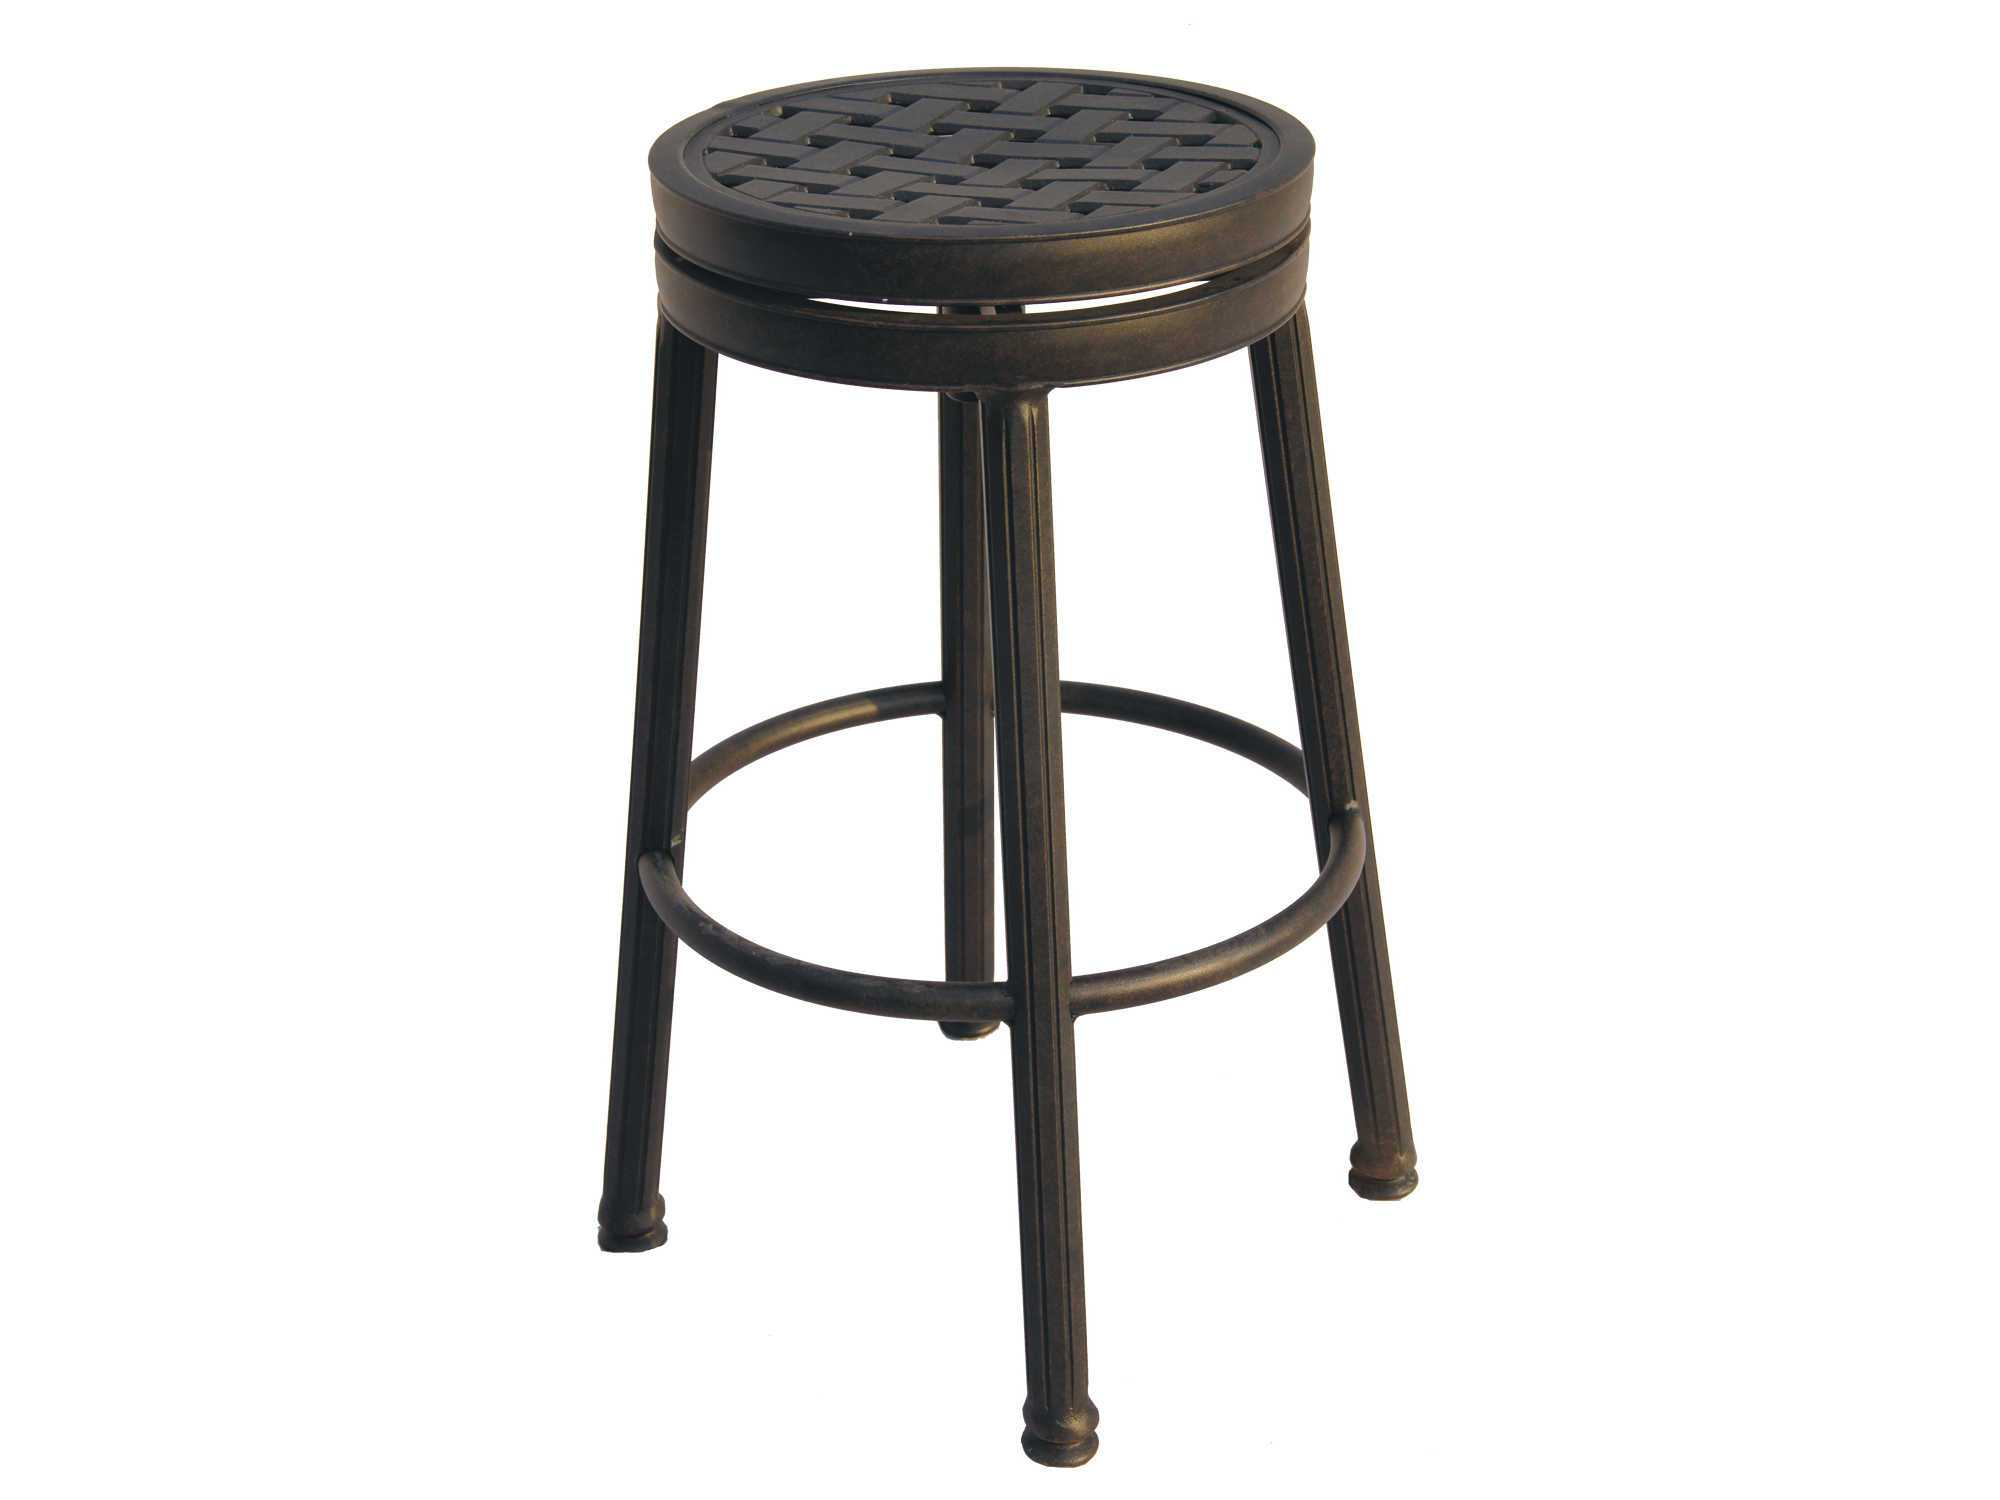 Darlee Outdoor Living Standard Backless Cast Aluminum